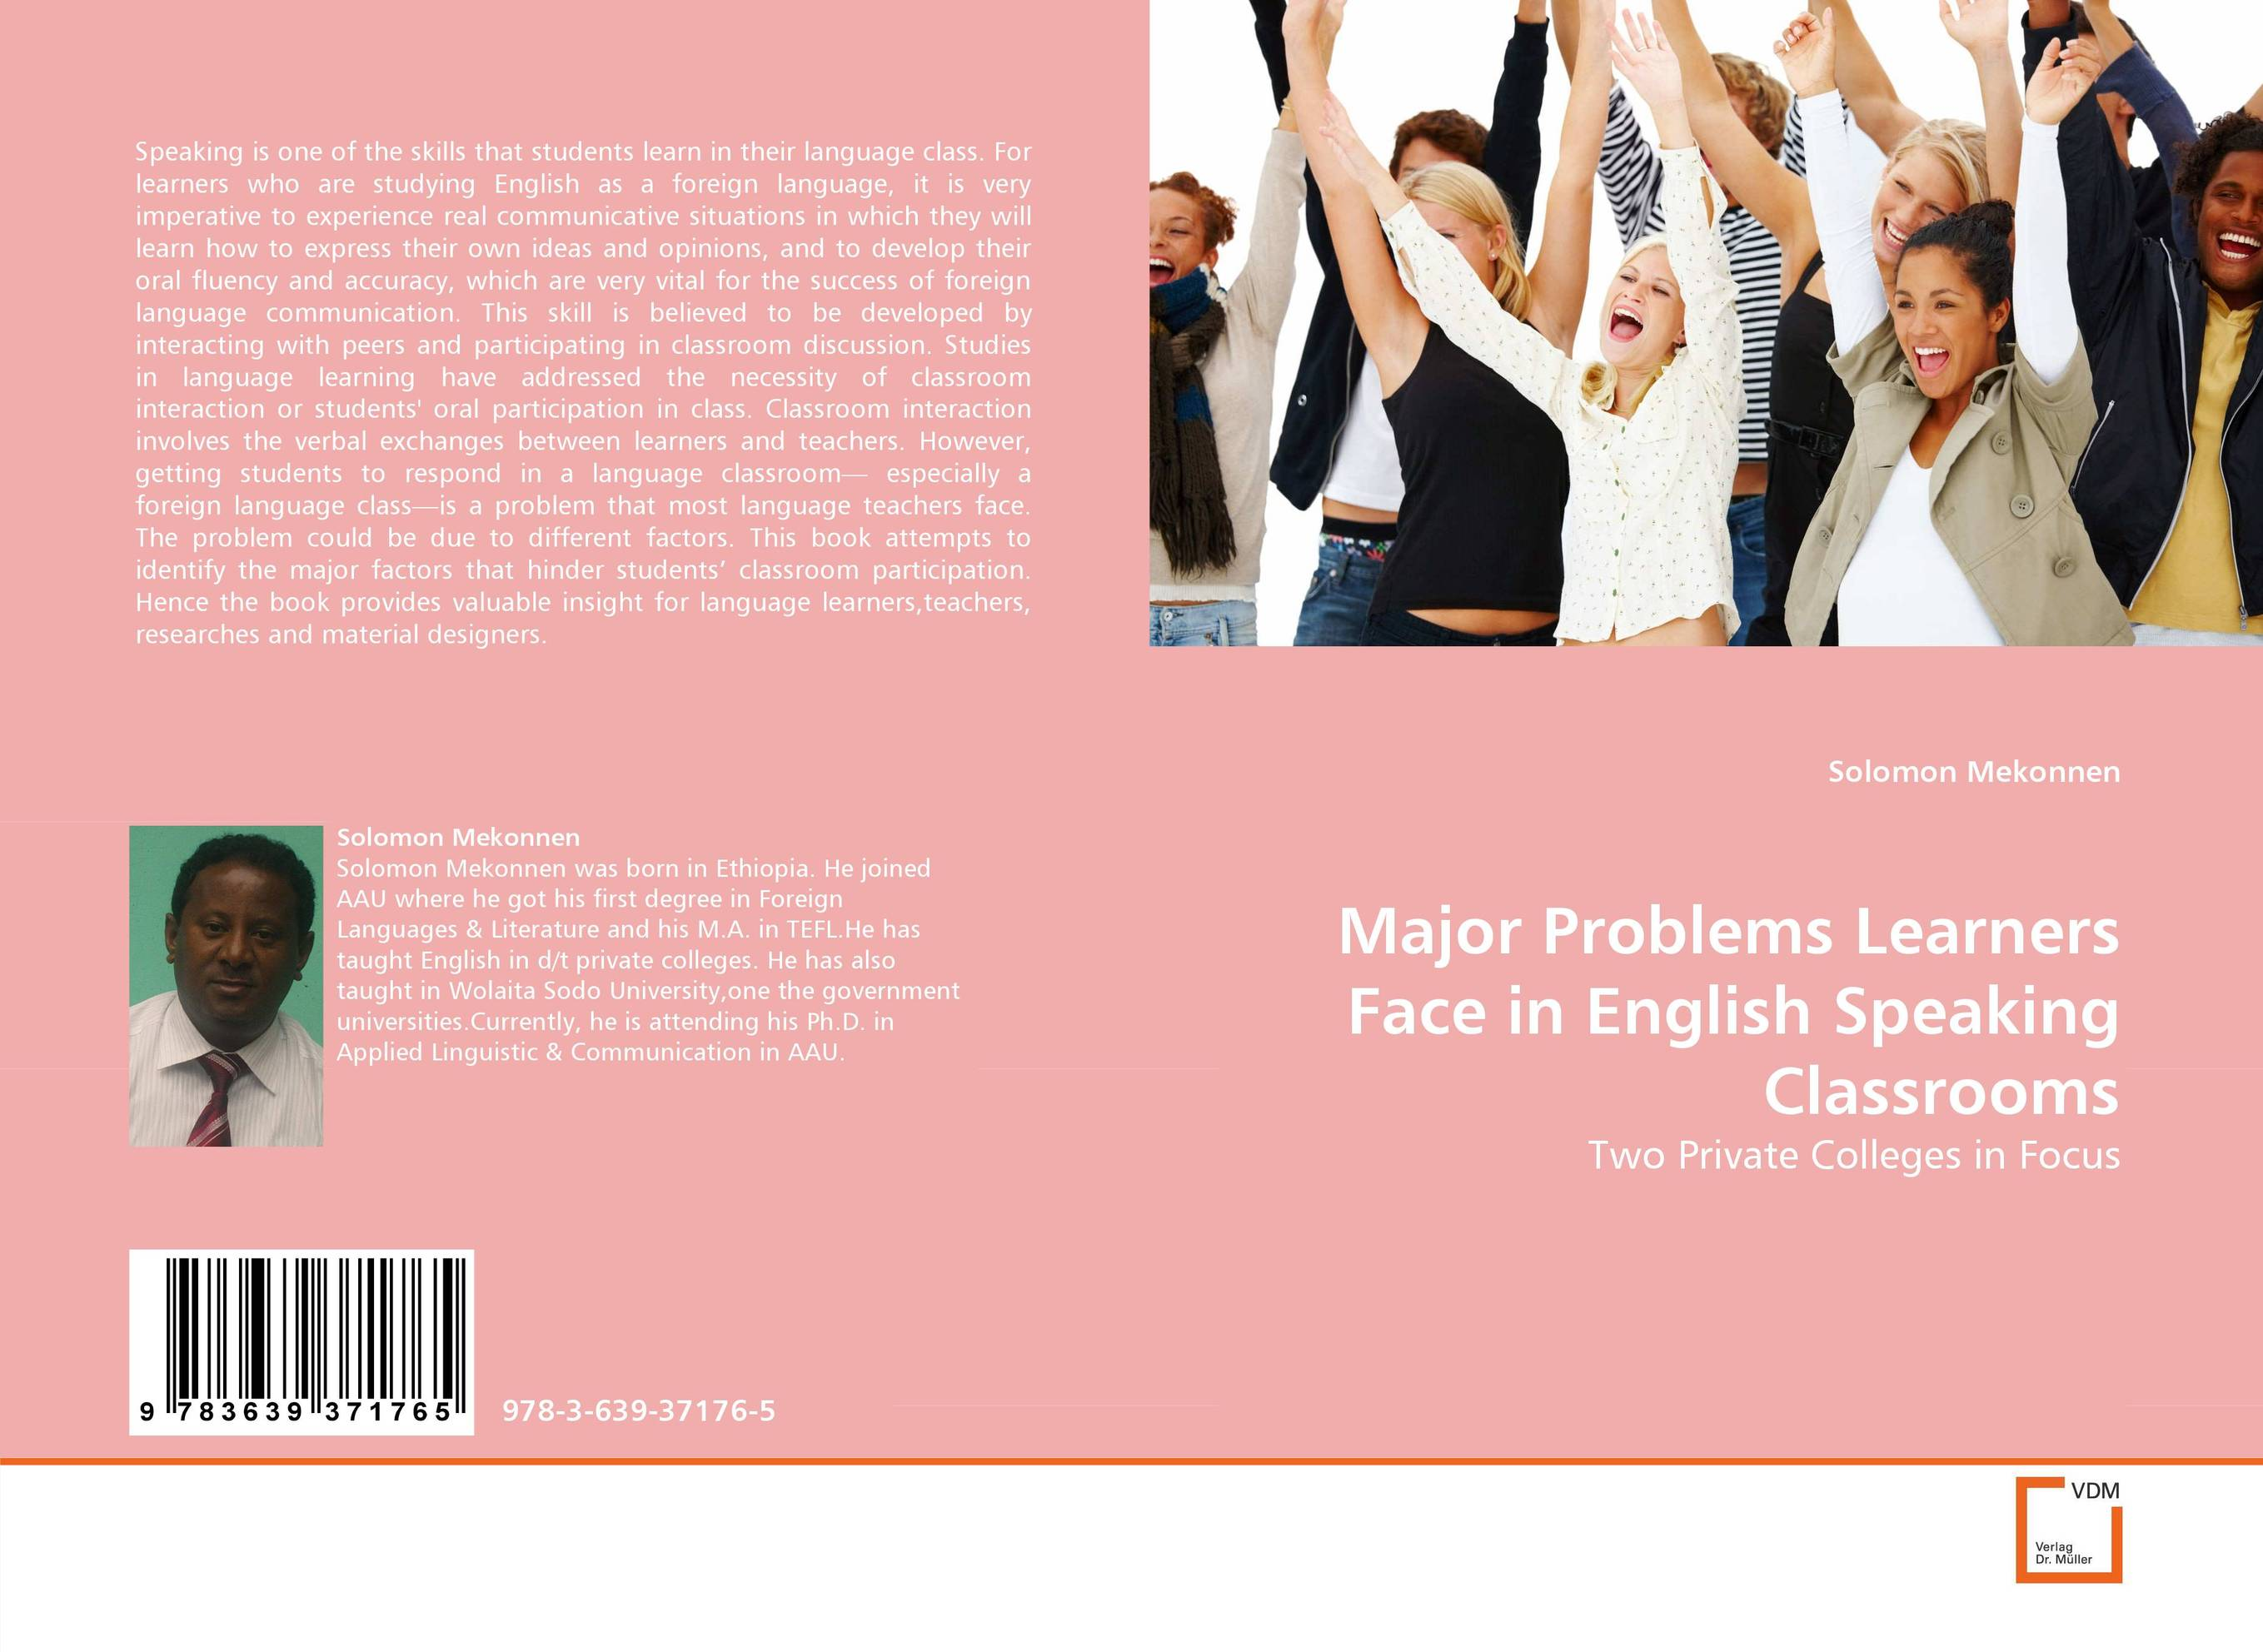 Major Problems Learners Face in English Speaking Classrooms foreign language speaking anxiety in asking questions in class